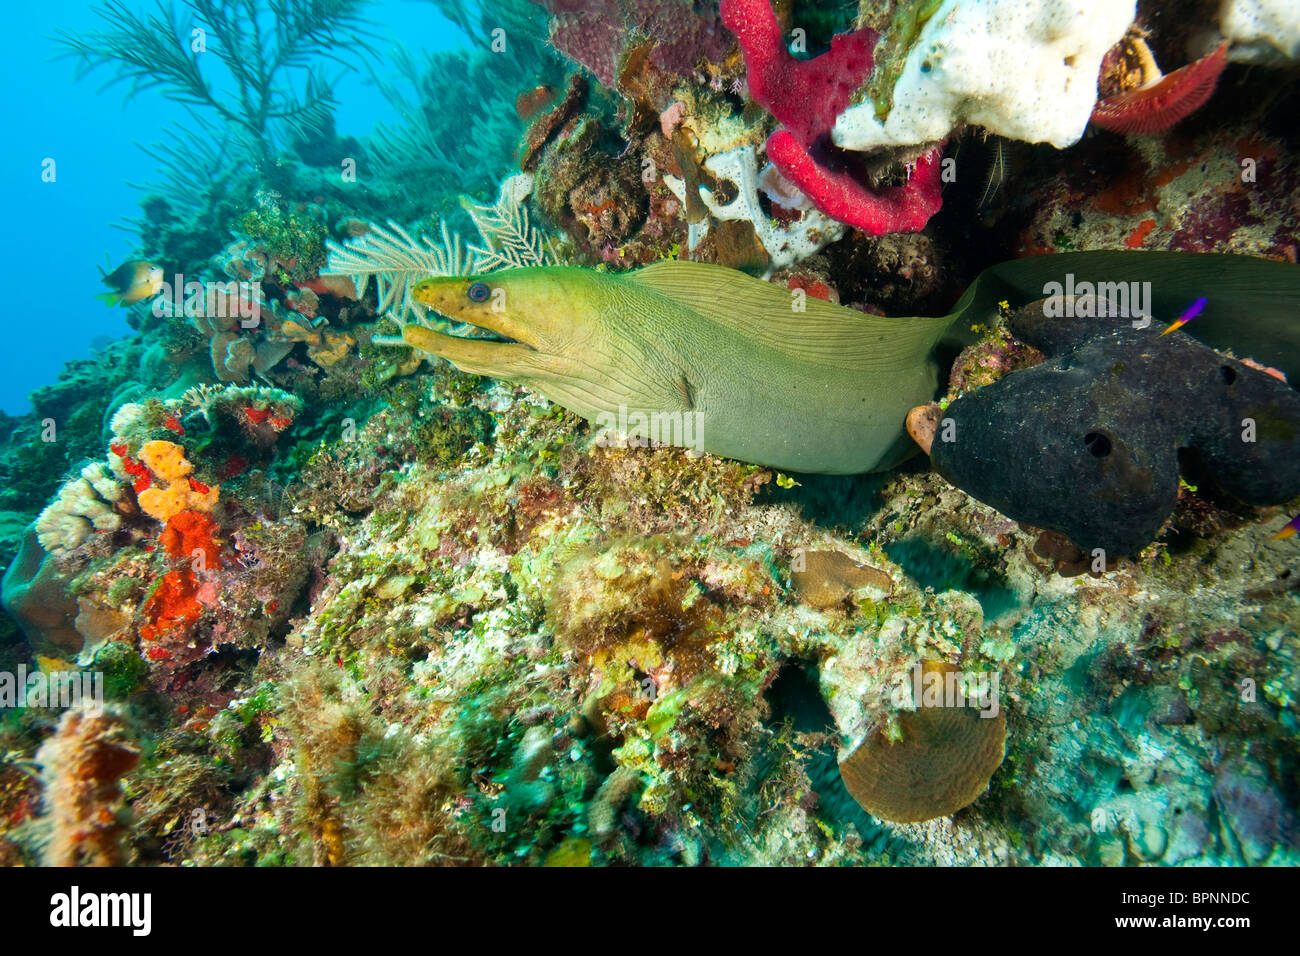 Green Moray Eel, Roatan Marine Park, Caribbean Scuba Diving, Roatan, Bay Islands, Honduras, Central America - Stock Image